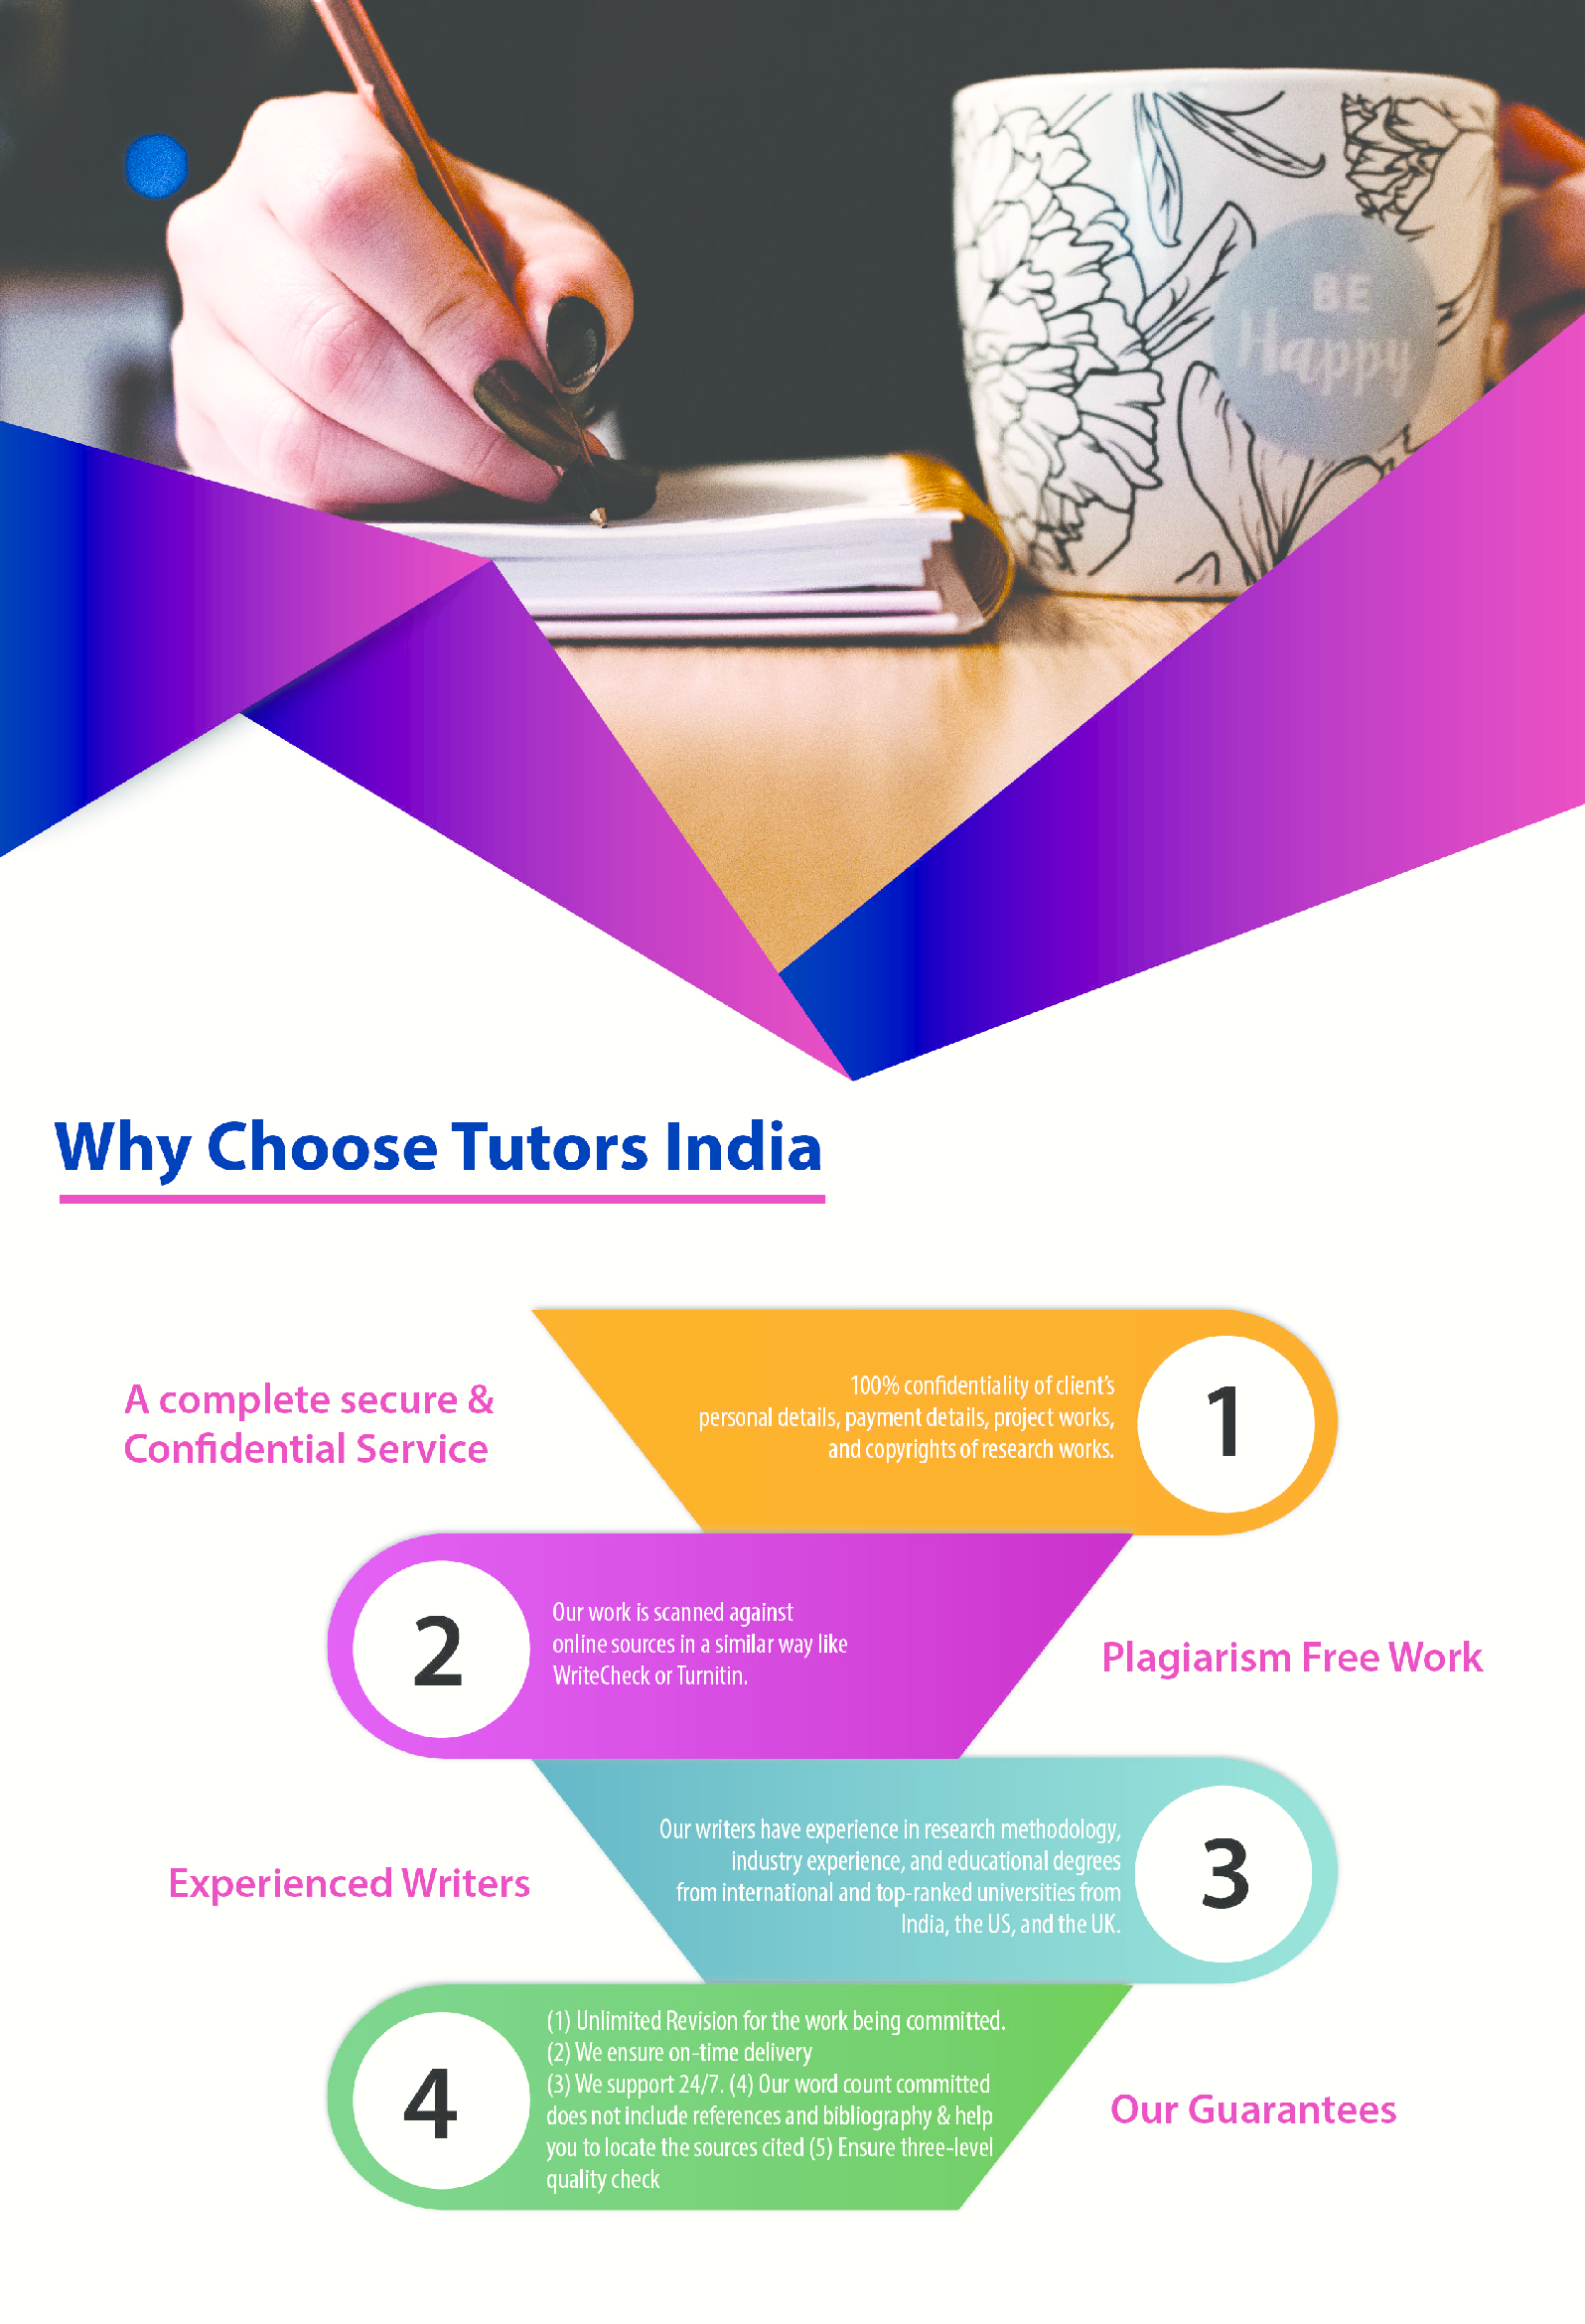 Dissertation Proposal Writing Service   Best Help At Cheap Prices in UK